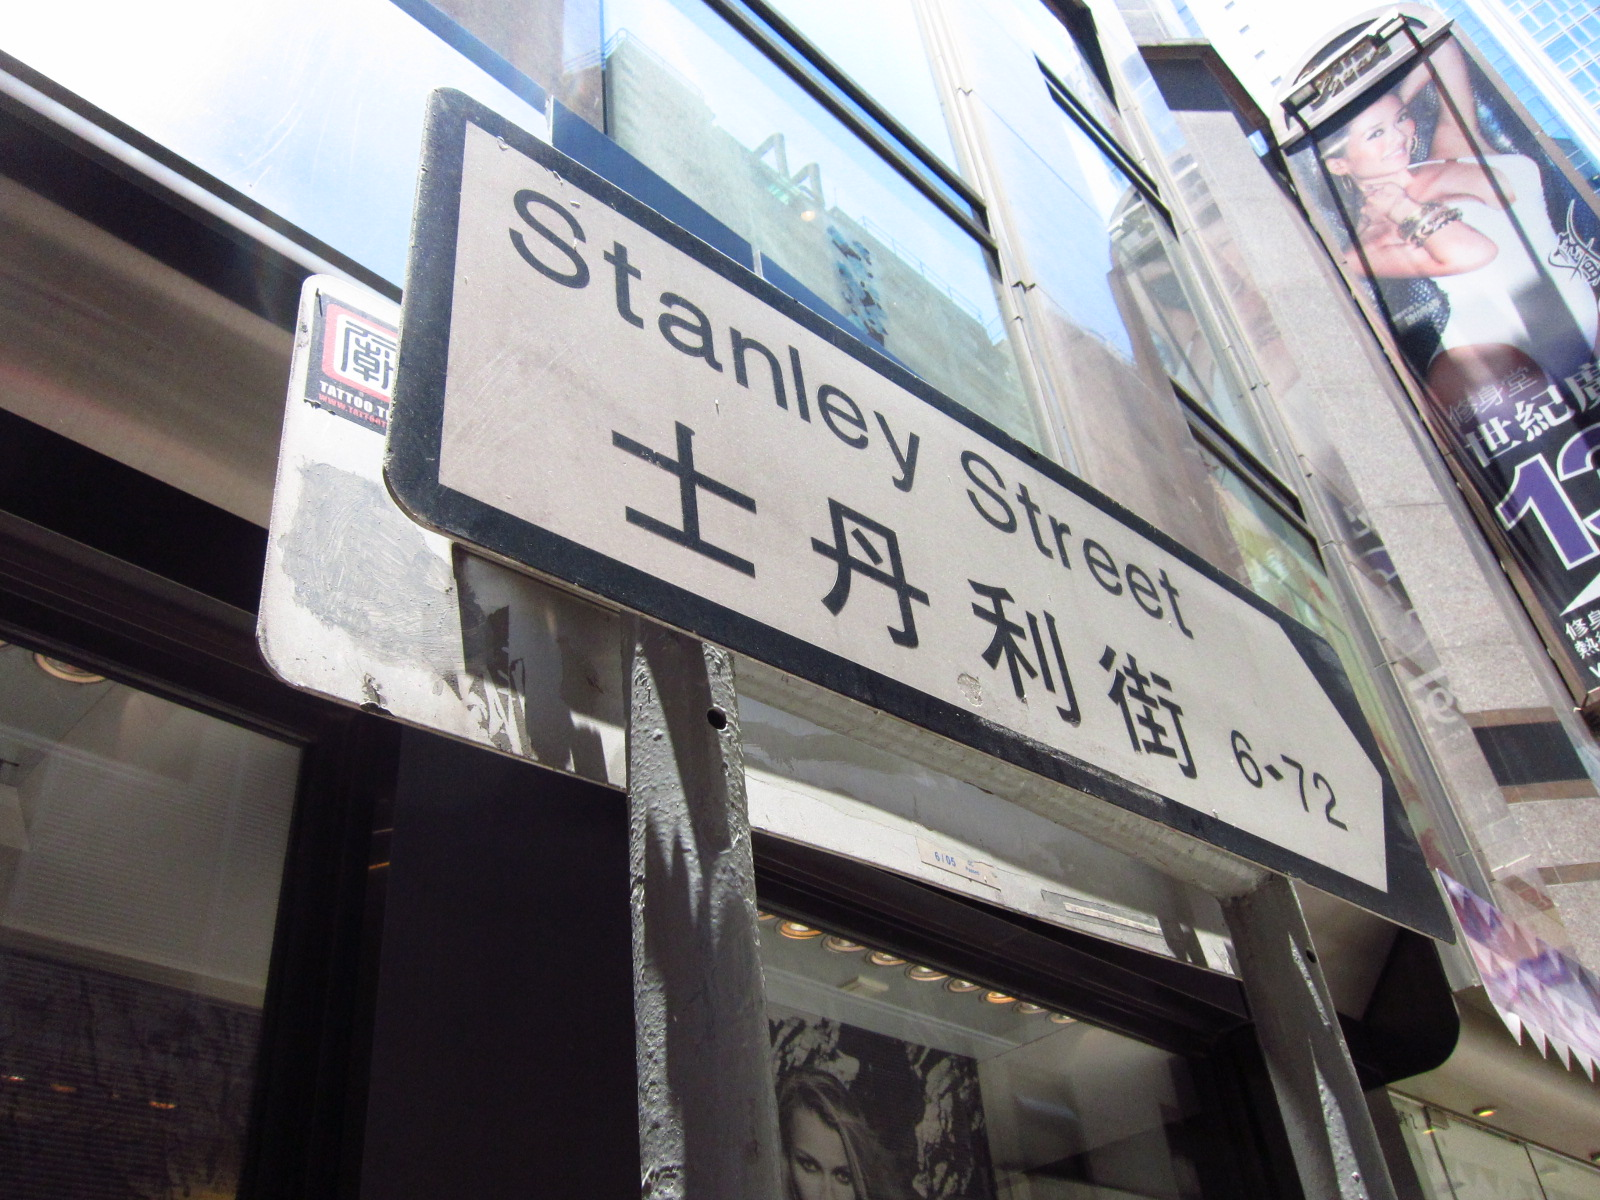 HongKong 2011 Photolog - Day 5: Stanley Street, Luk Yu Tea House, Avenue of Stars